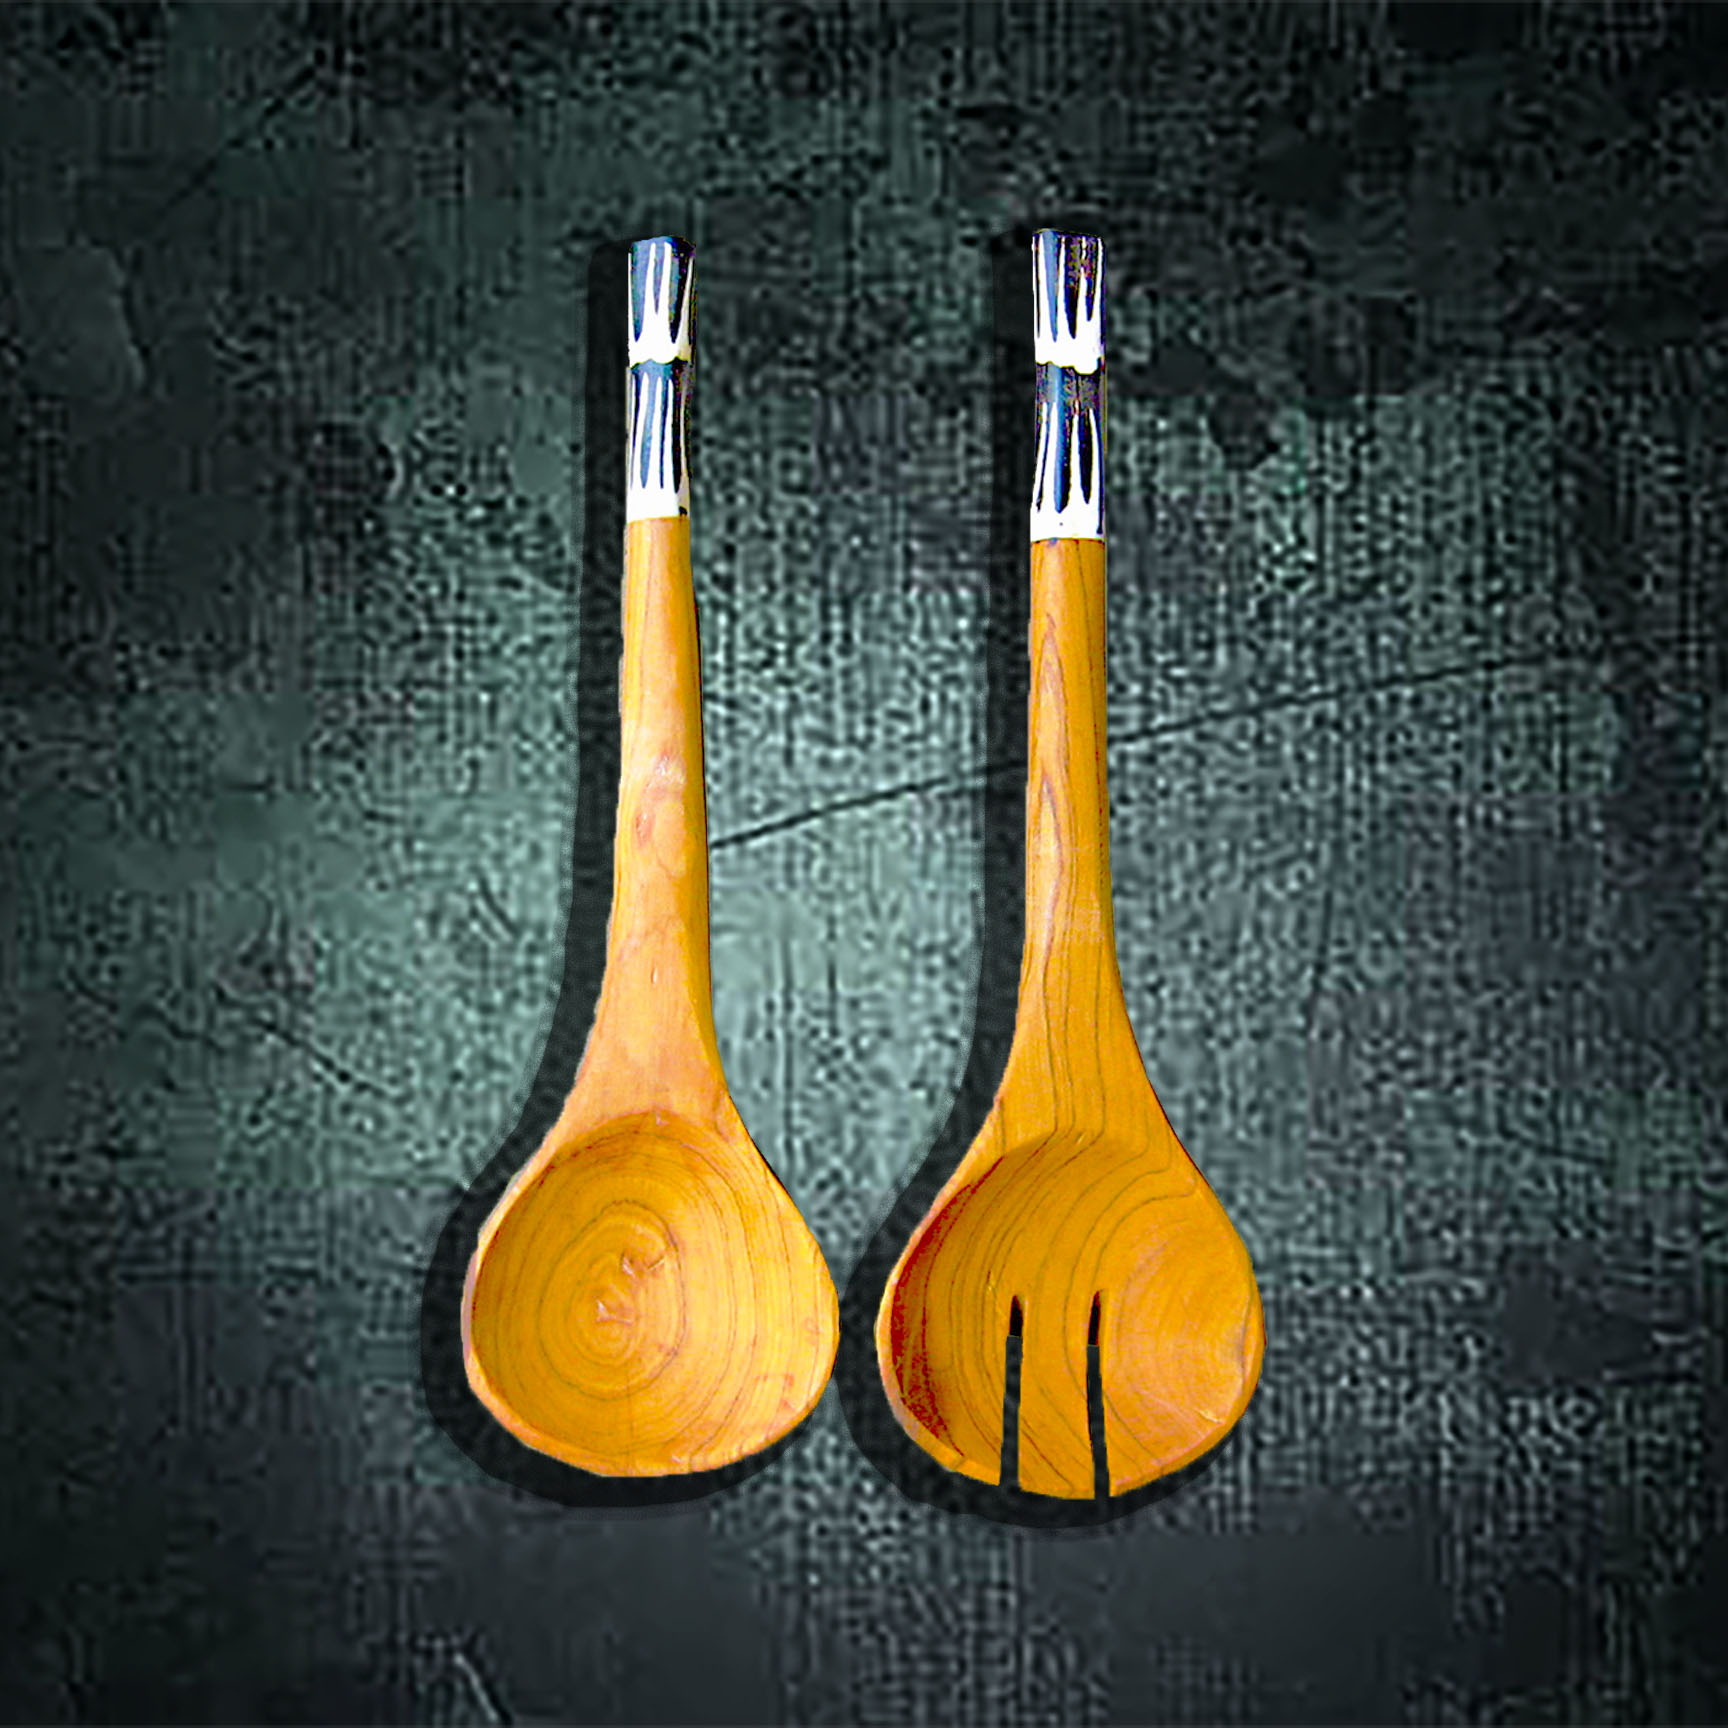 S2 Bone Handle Salad Servers